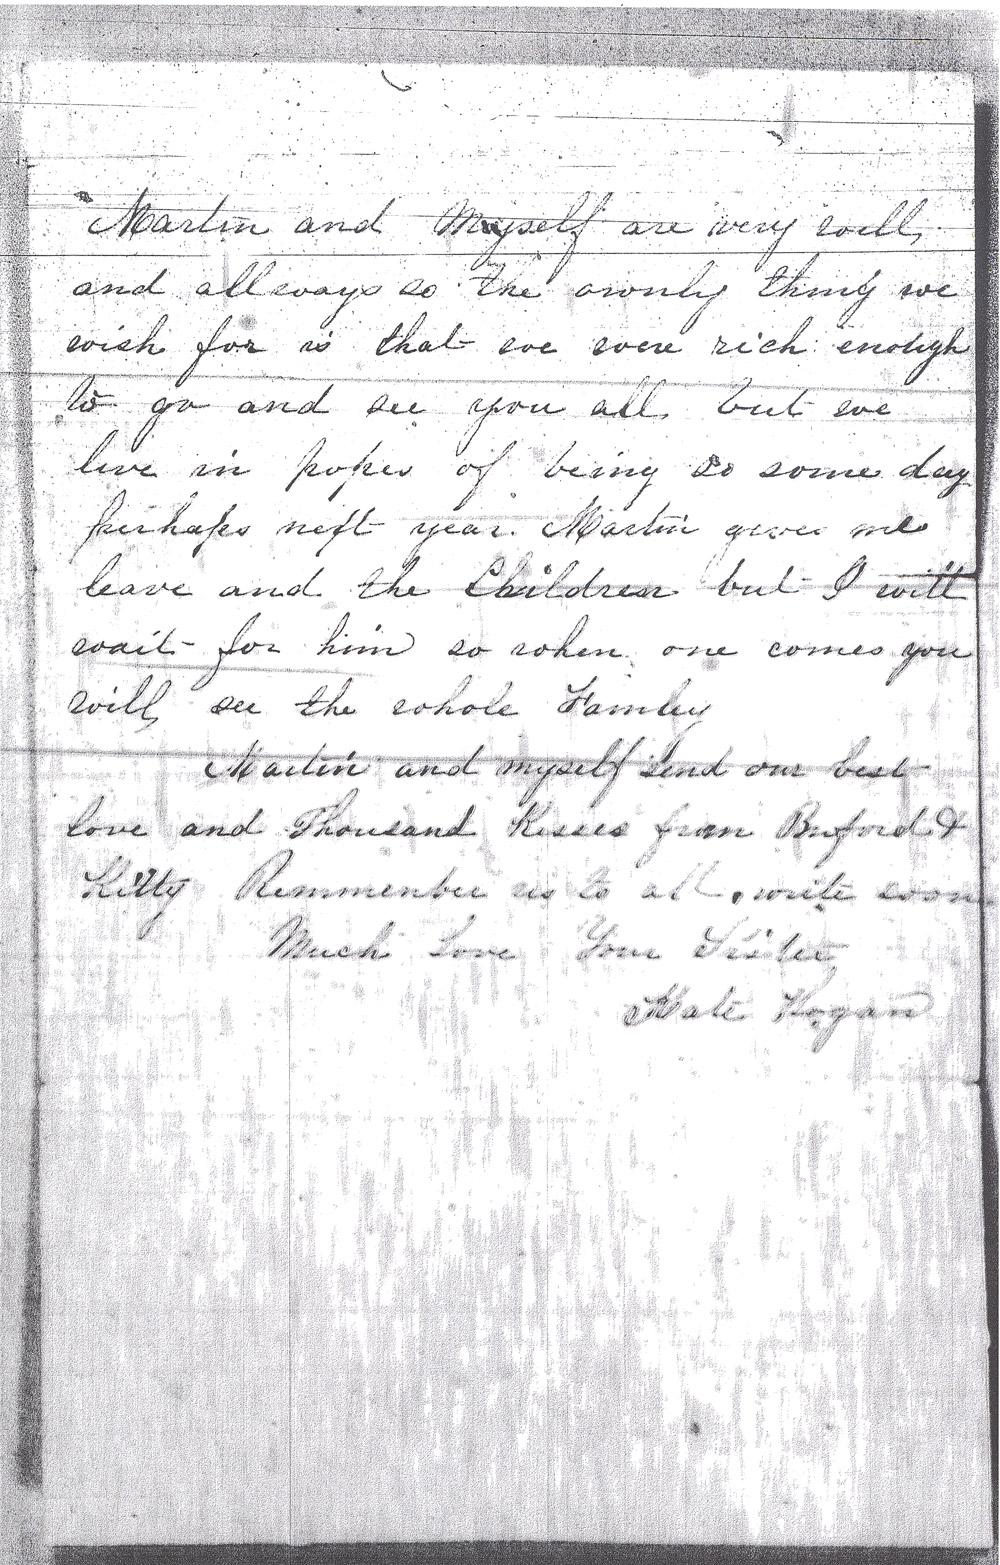 Kate Hogan Letter 2, Page 3